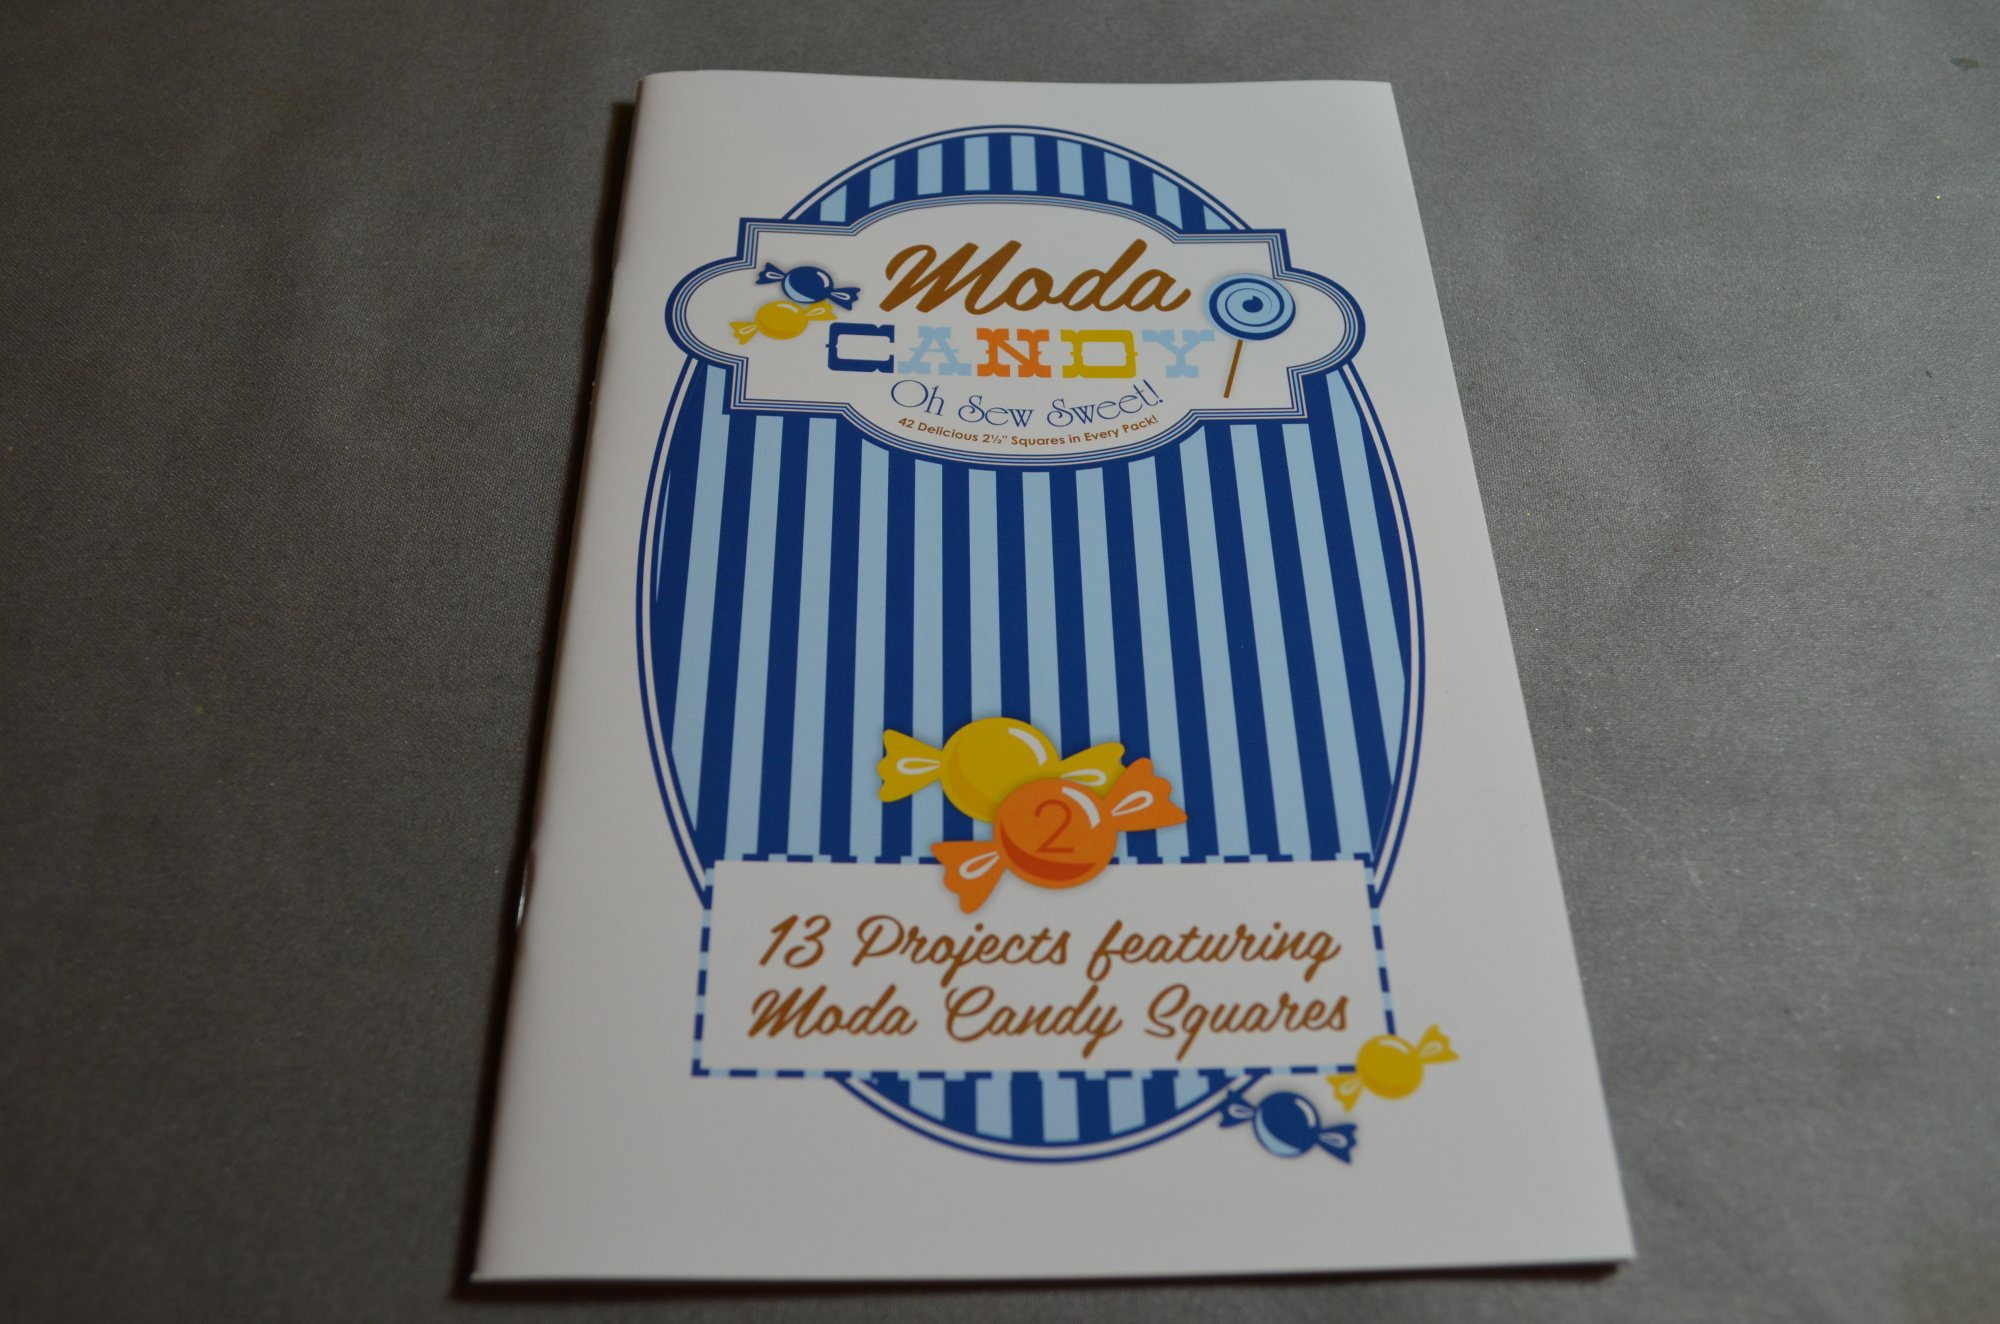 Moda Candy Booklet 2 PSMC2